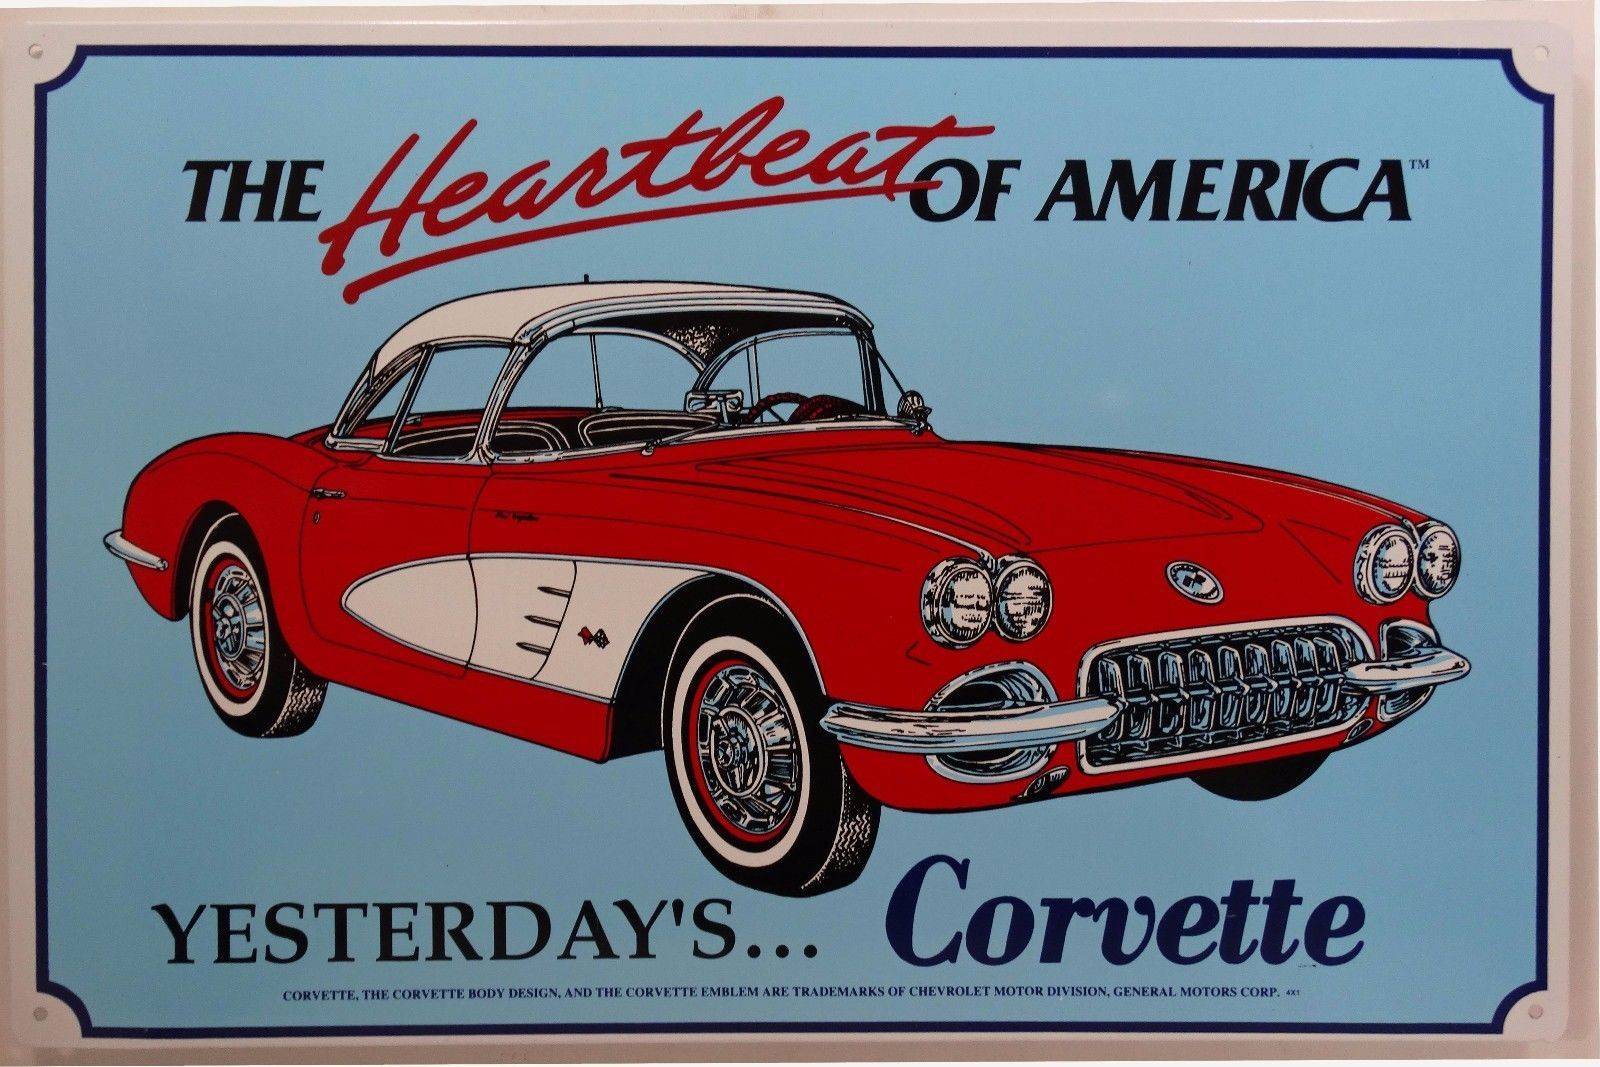 Corvette Heartbeat of America Red and White Classic Car Tin Sign